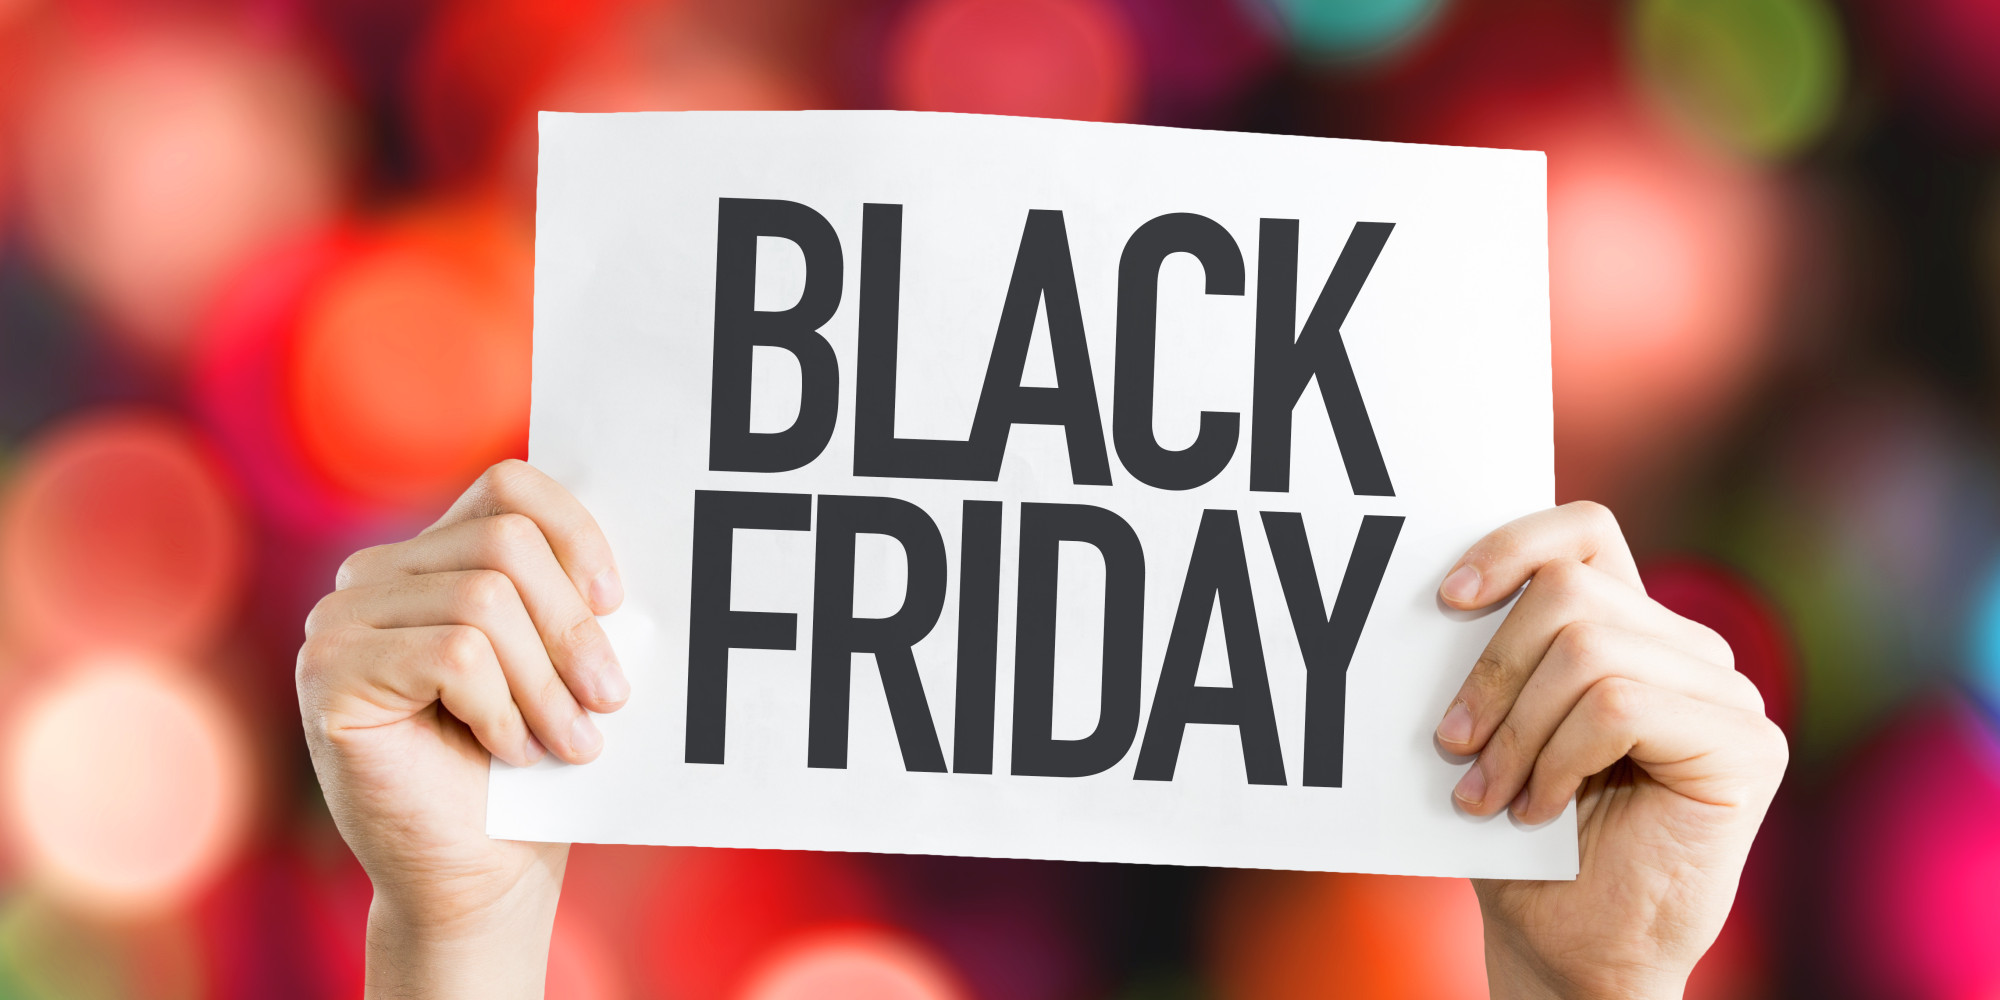 black friday 39 s dirty marketing tricks watch out huffpost uk. Black Bedroom Furniture Sets. Home Design Ideas